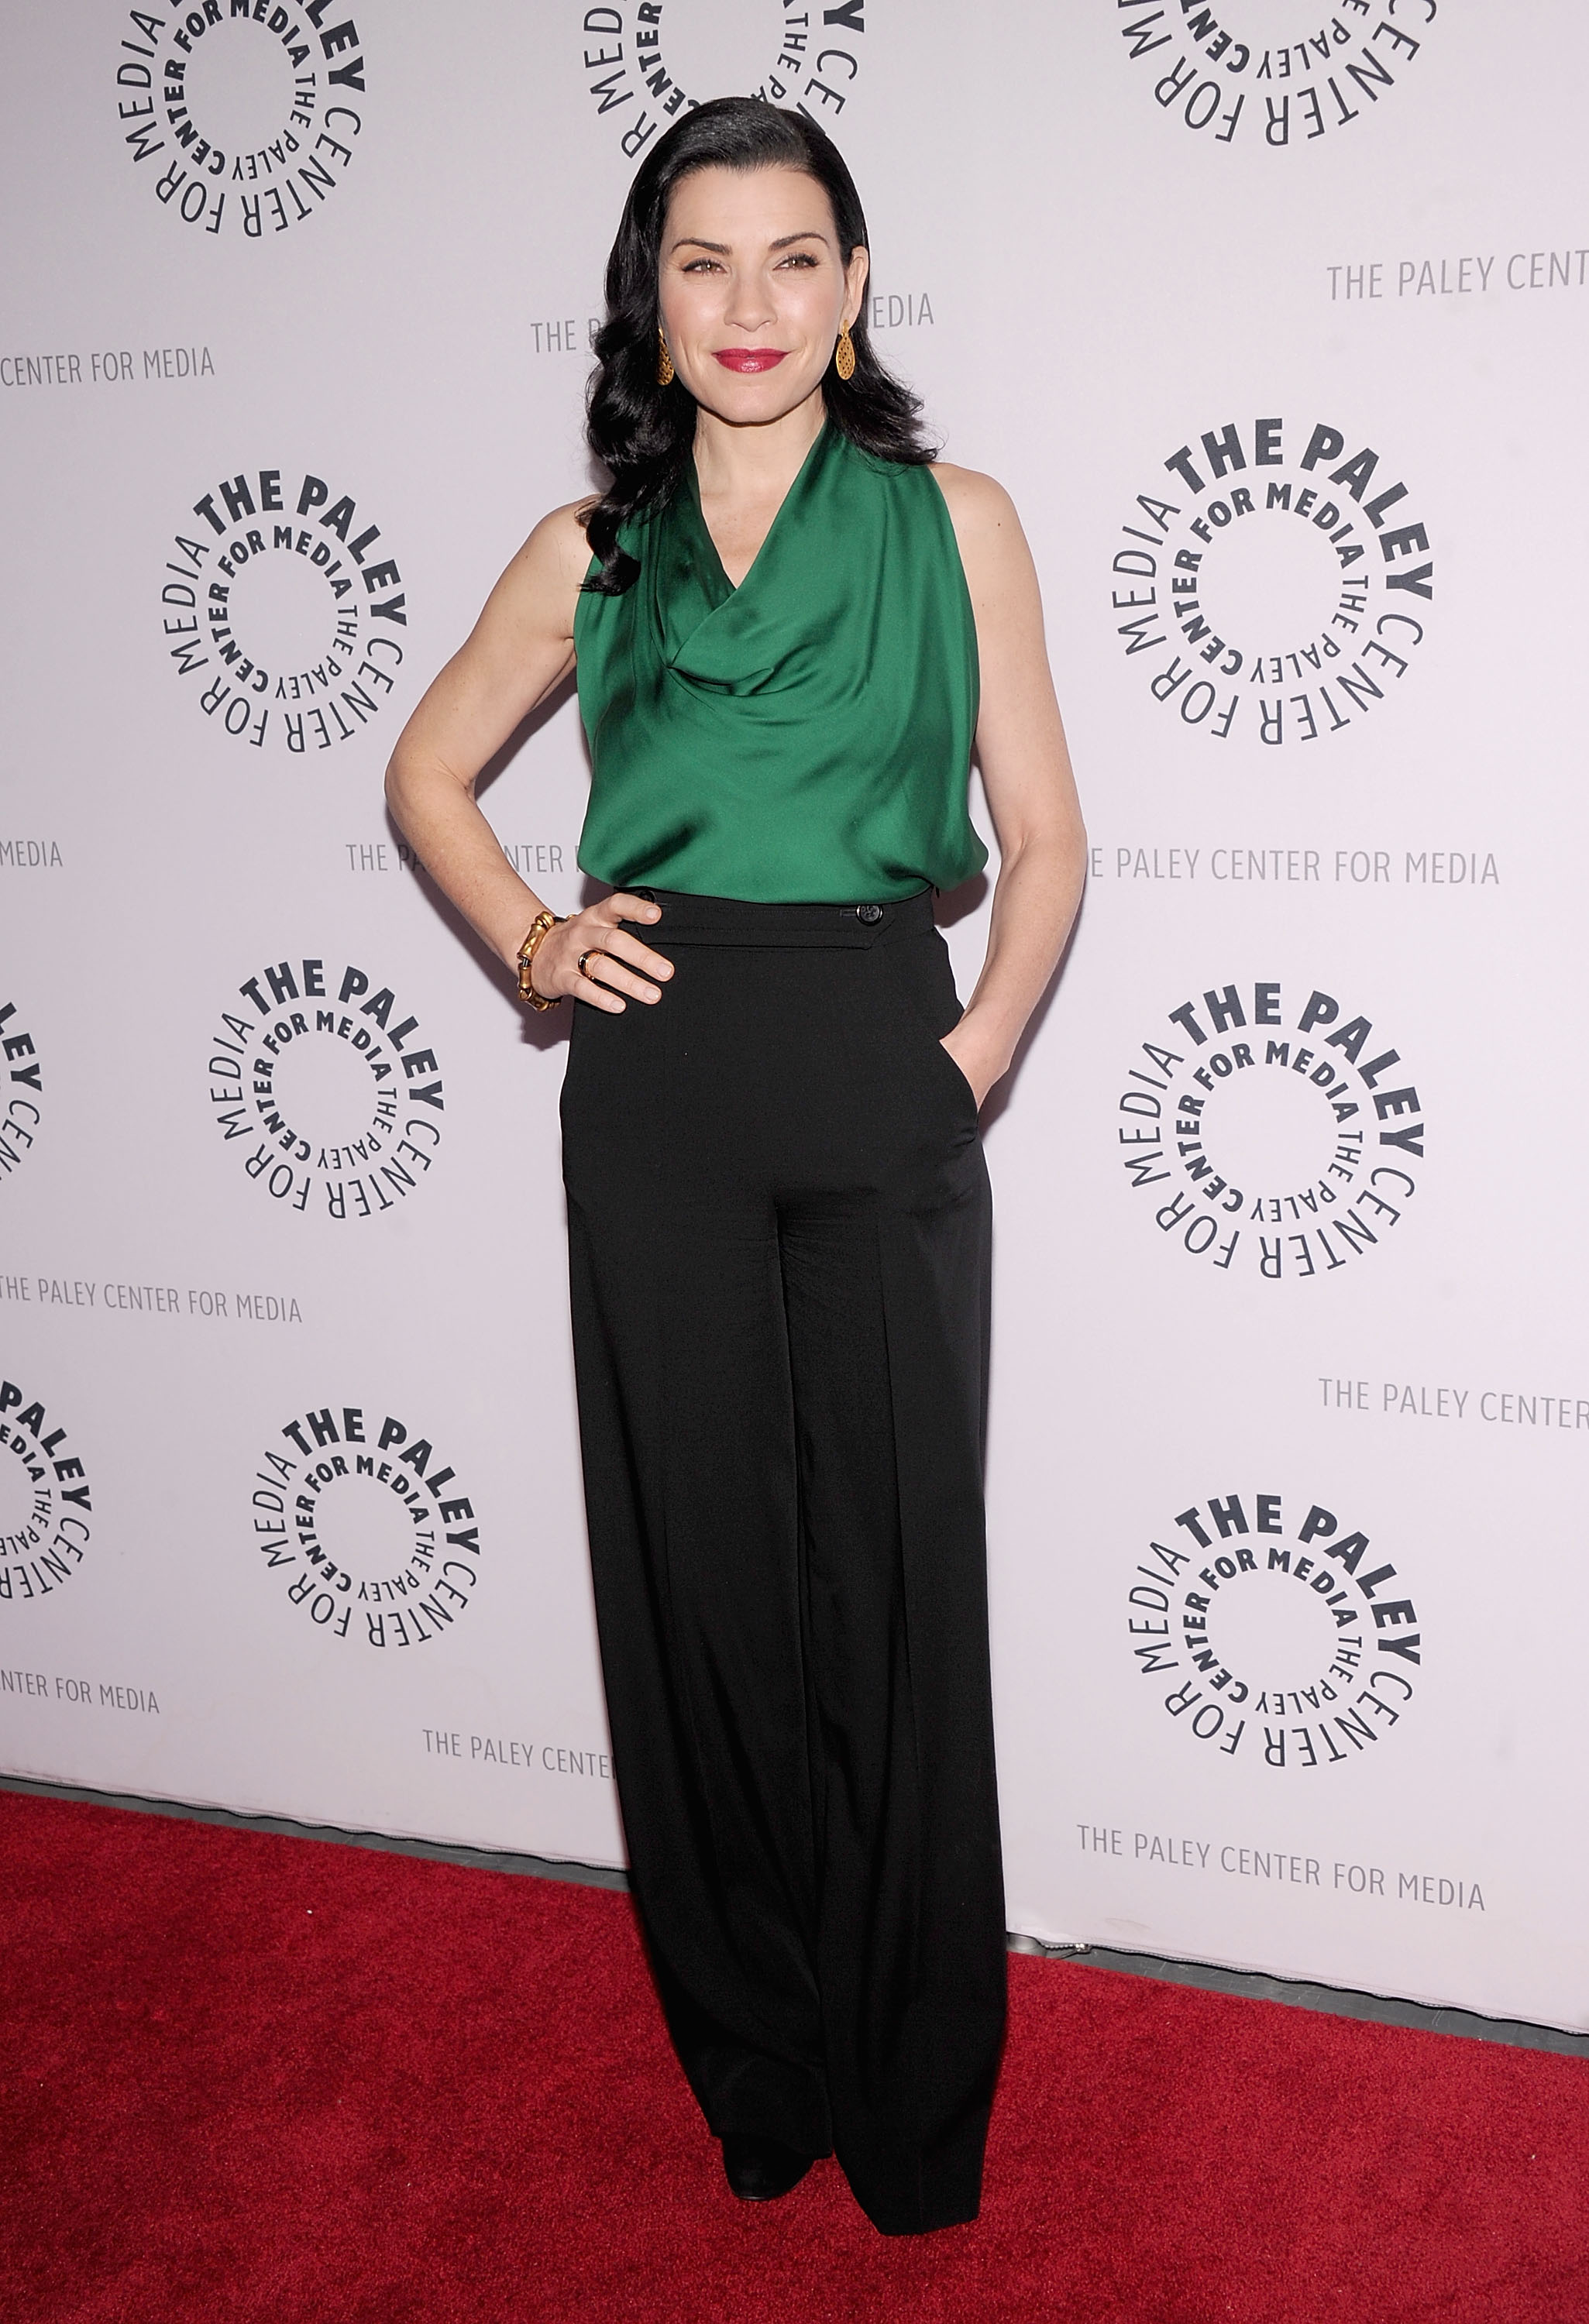 Julianna Margulies at the Paley Center For Media in New York.